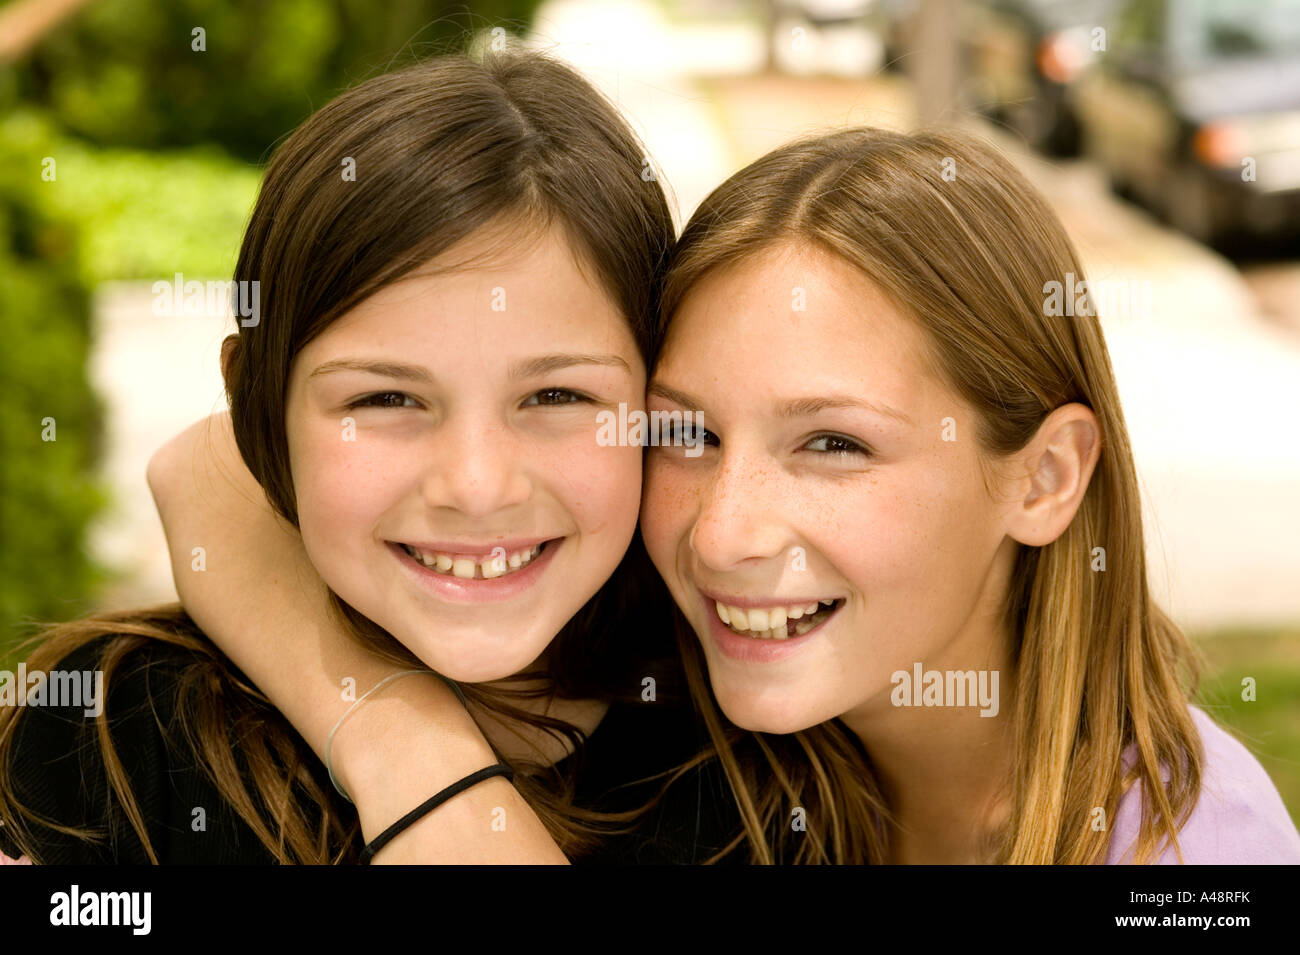 Girl embracing sister, smiling, portrait Stock Photo